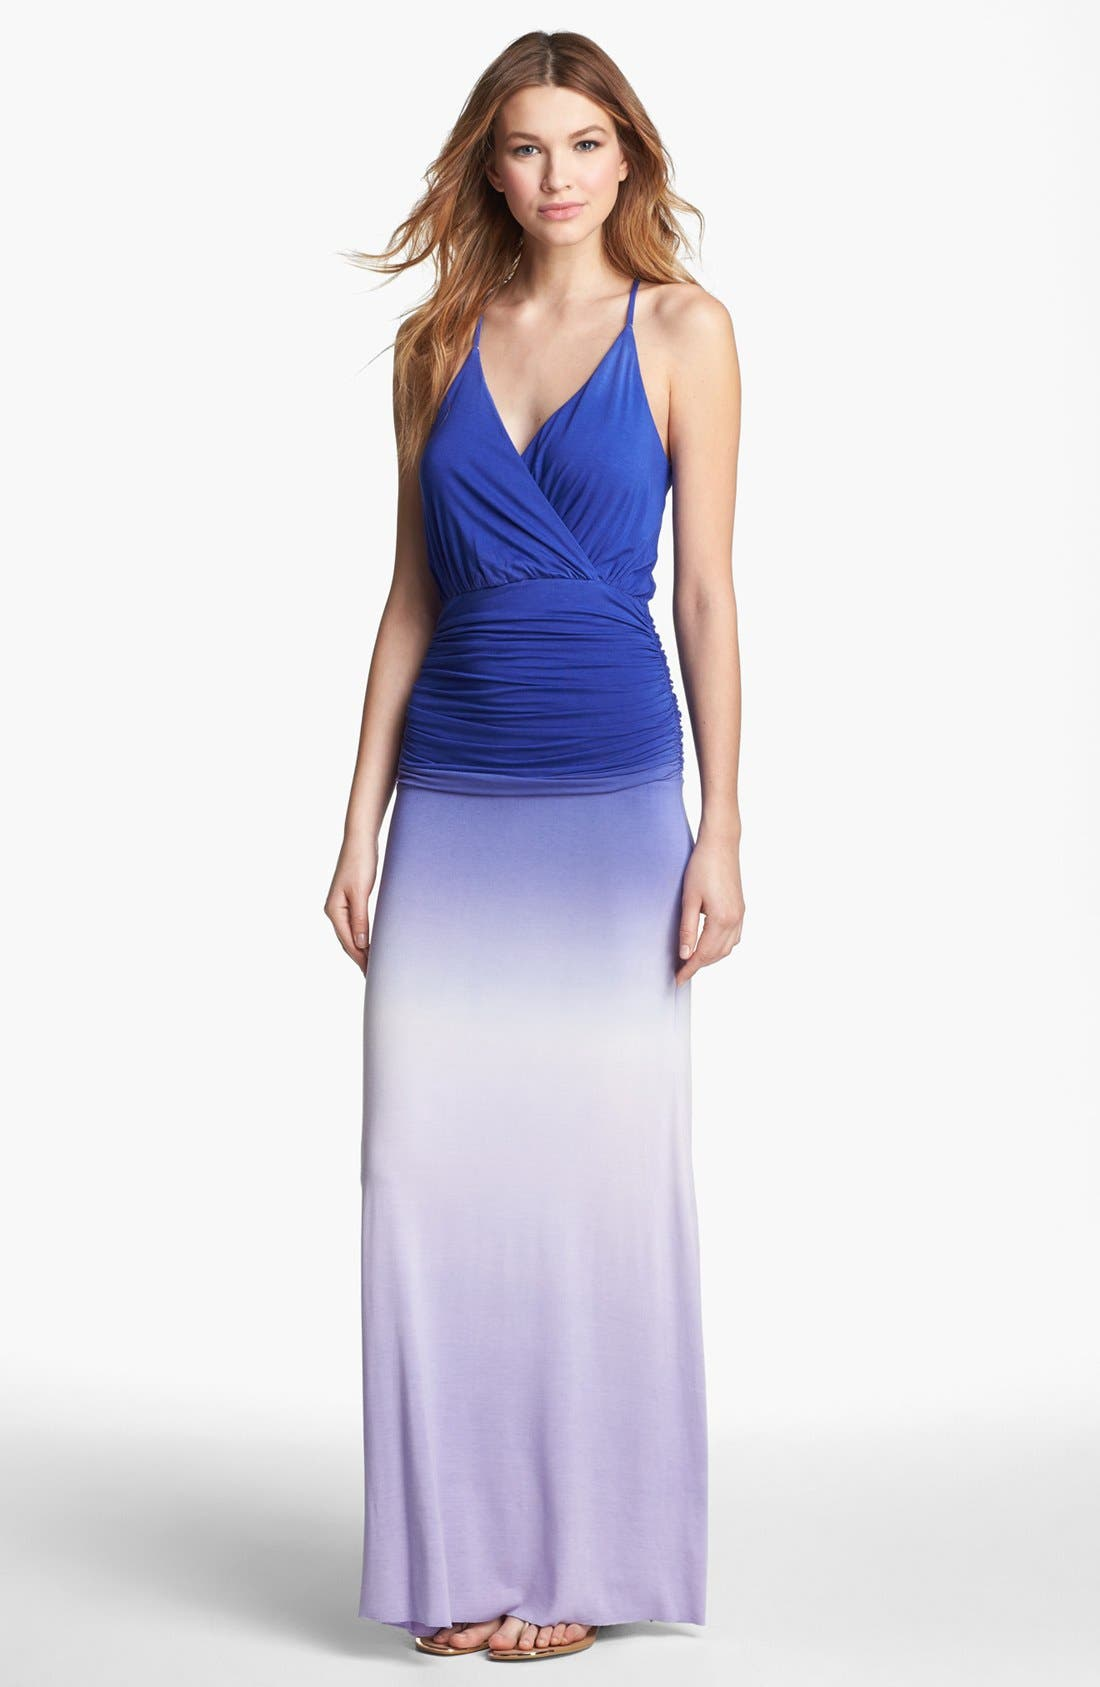 Alternate Image 1 Selected - Young, Fabulous & Broke 'Hattie' Maxi Dress